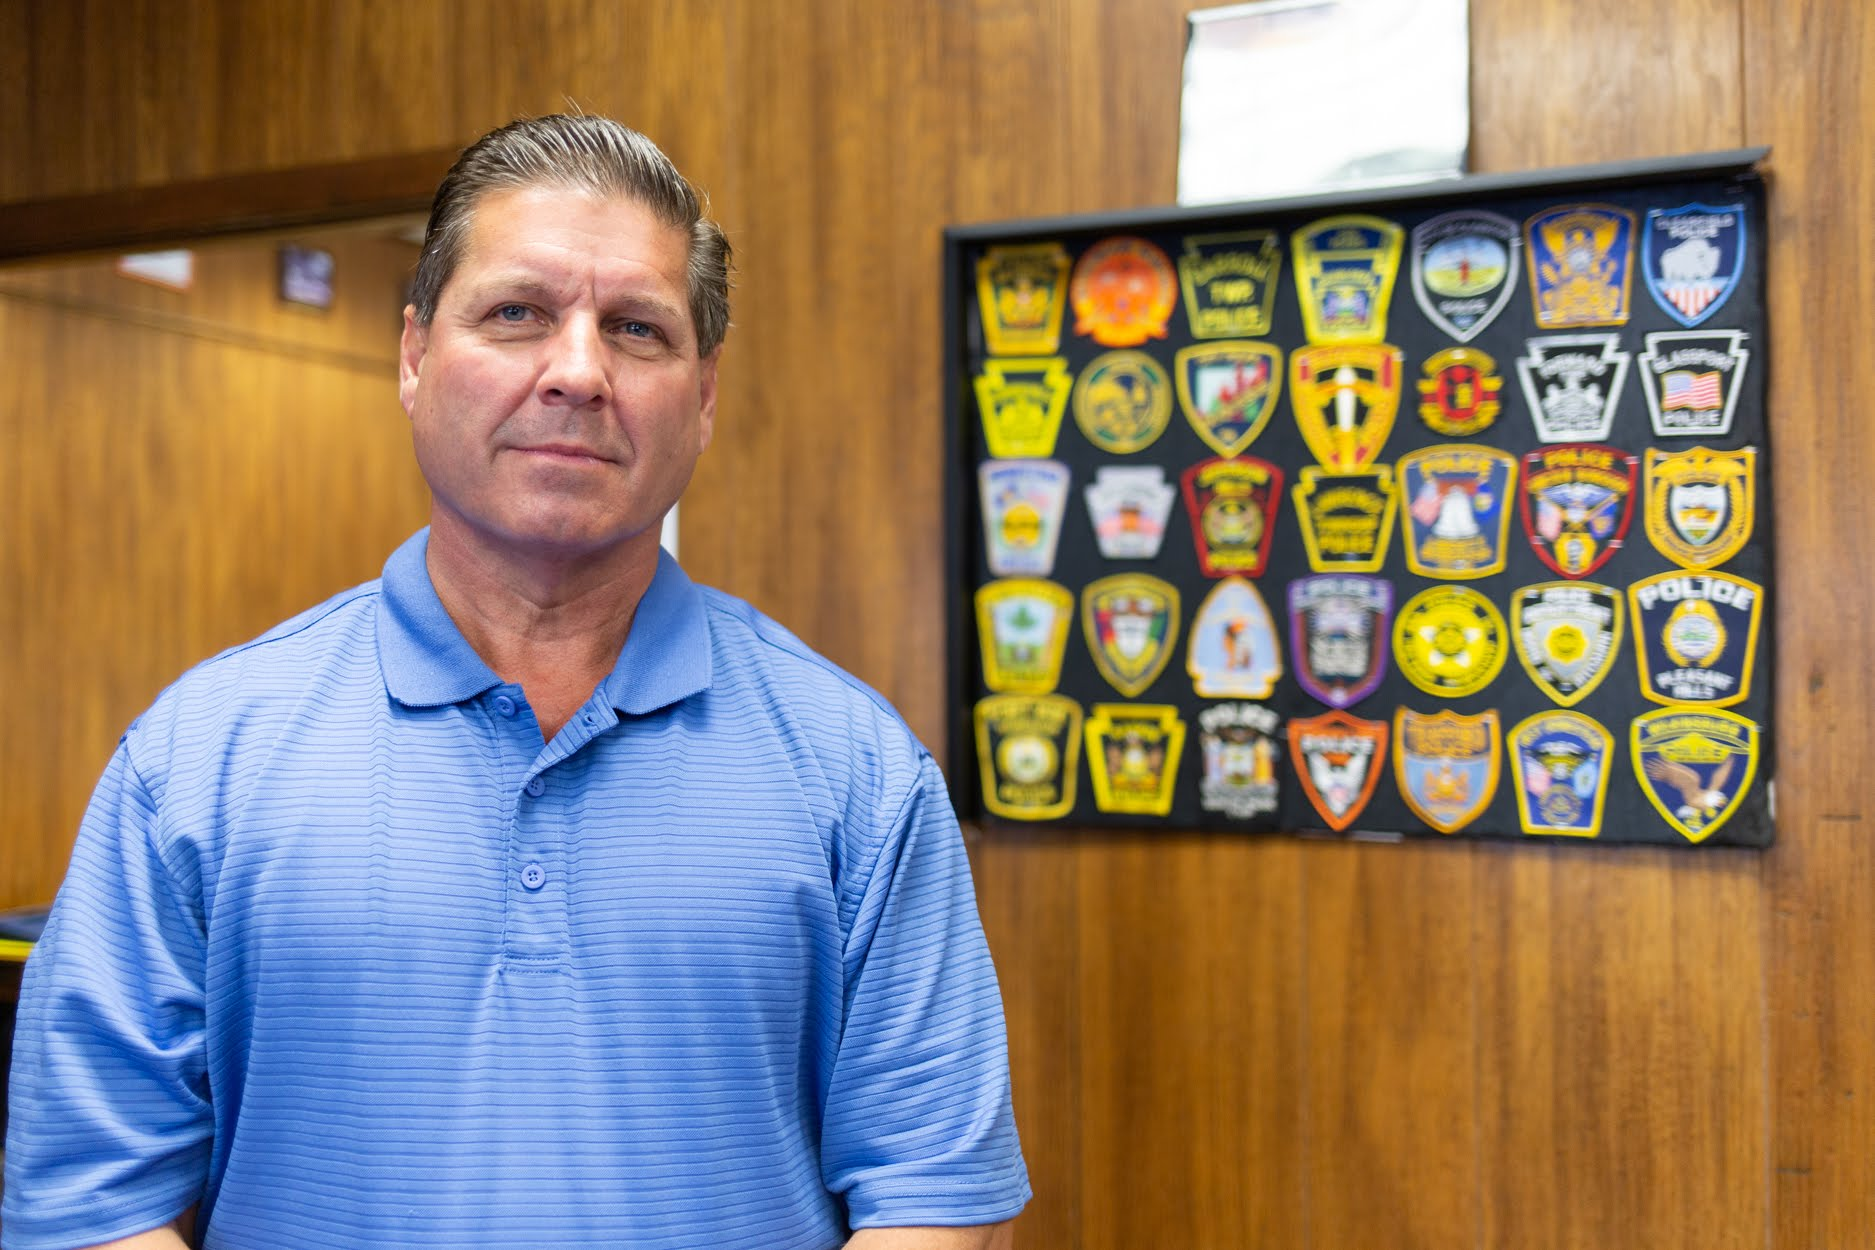 Carl Bailey, secretary-treasurer and principal officer of Teamsters Local 205, stands in his White Oak office in front of a collection of emblems representing some of the local police forces represented by the union. (Photo by John Altdorfer/PublicSource)